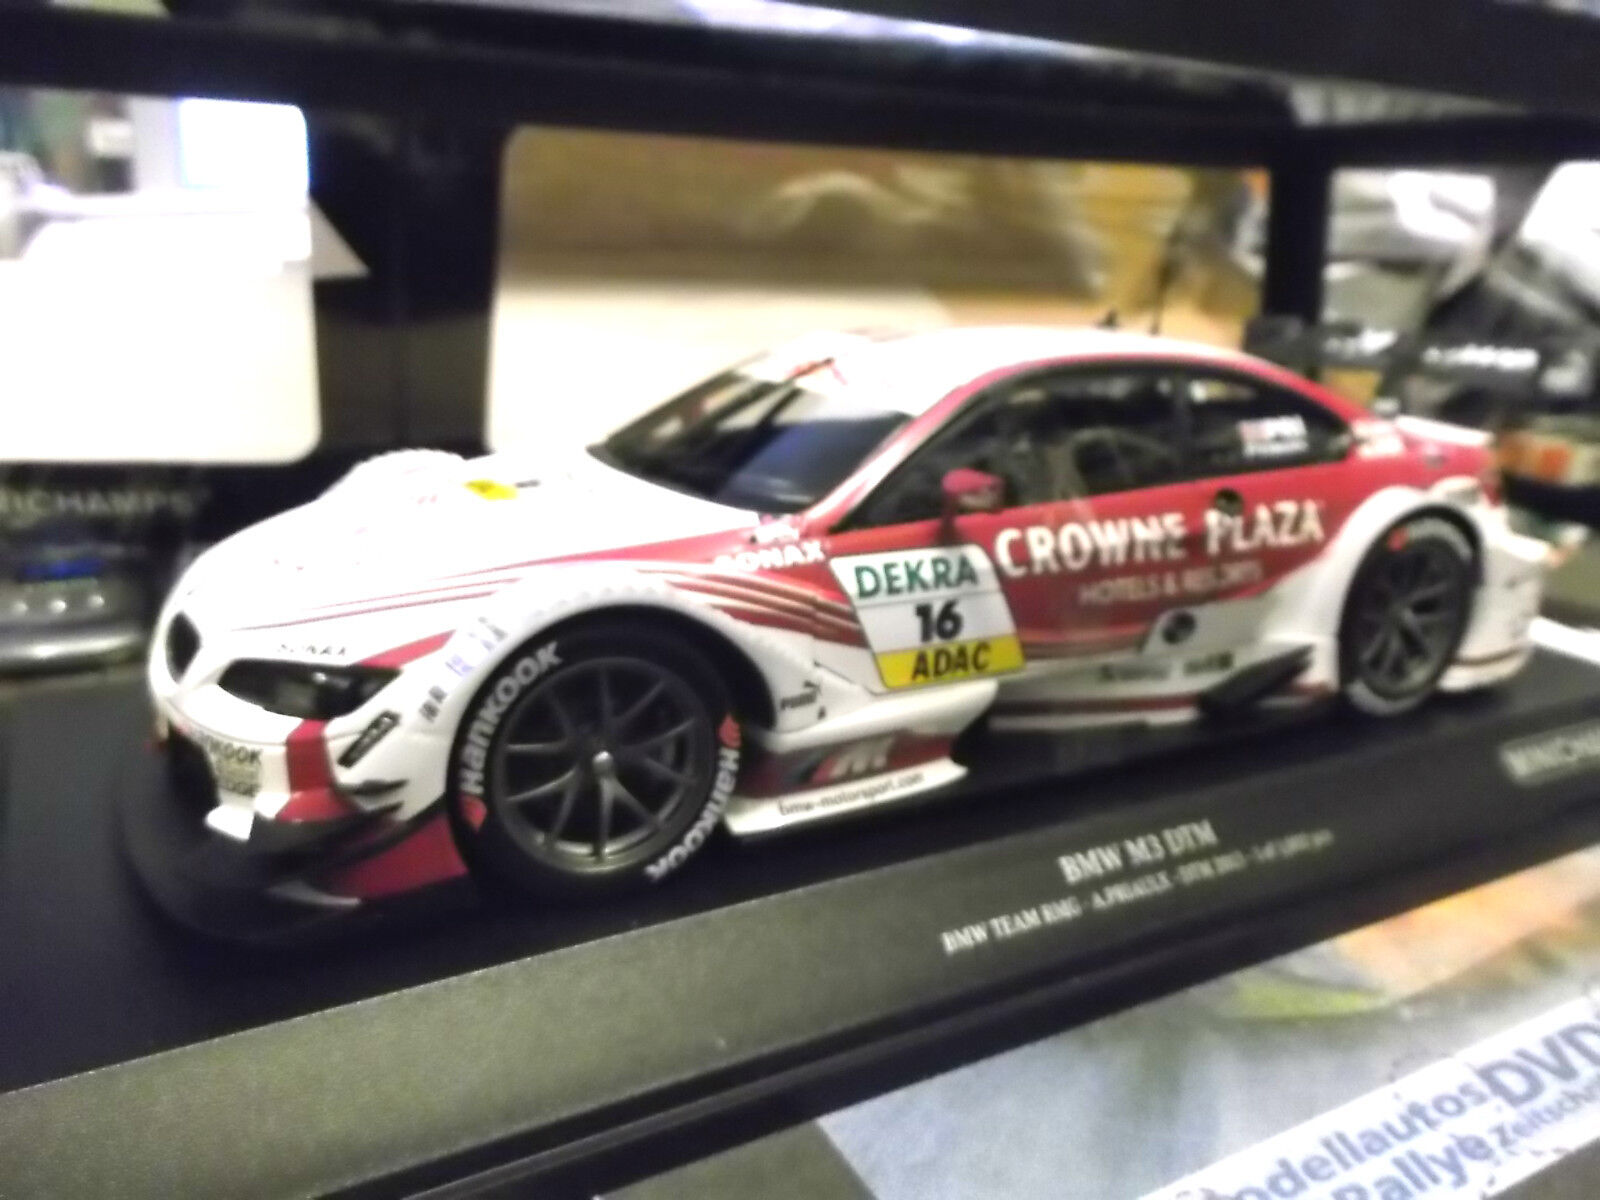 BMW m3 e92 COUPE DTM 2013 marchandises team Crowne plaza priaulx  16 Minichamps 1 18 New